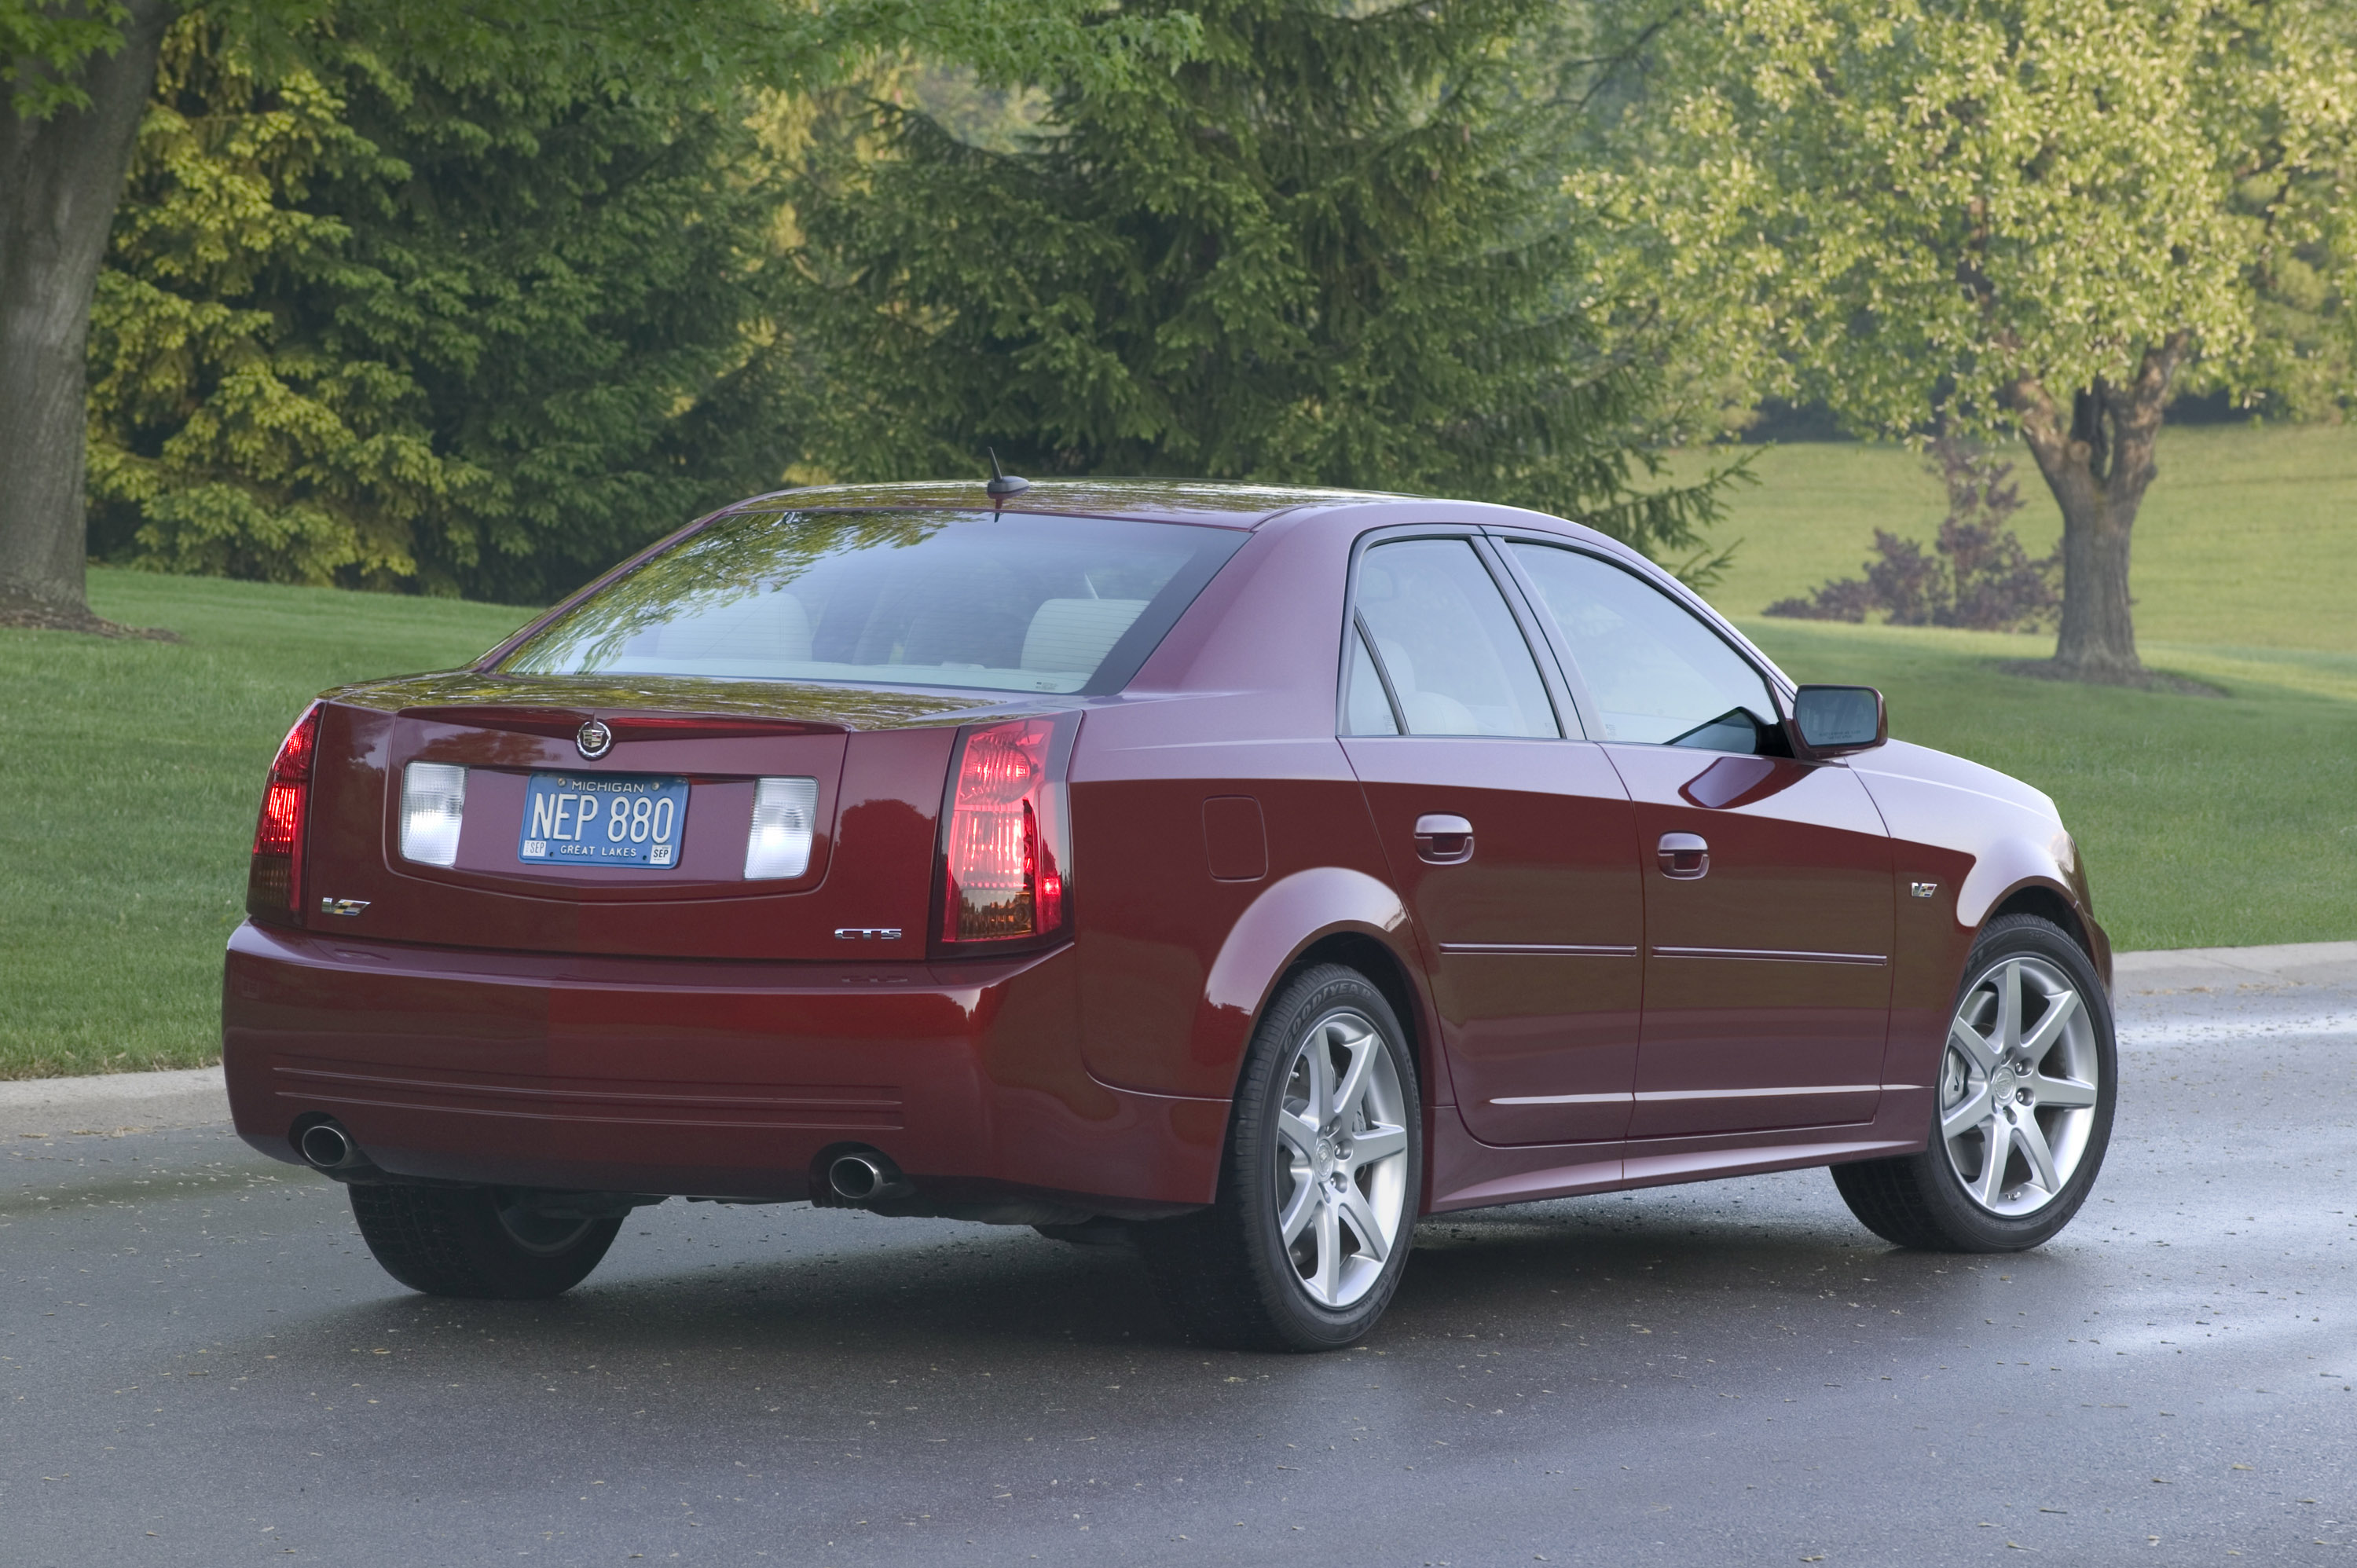 2007 cadillac cts v gallery 90155 top speed. Black Bedroom Furniture Sets. Home Design Ideas